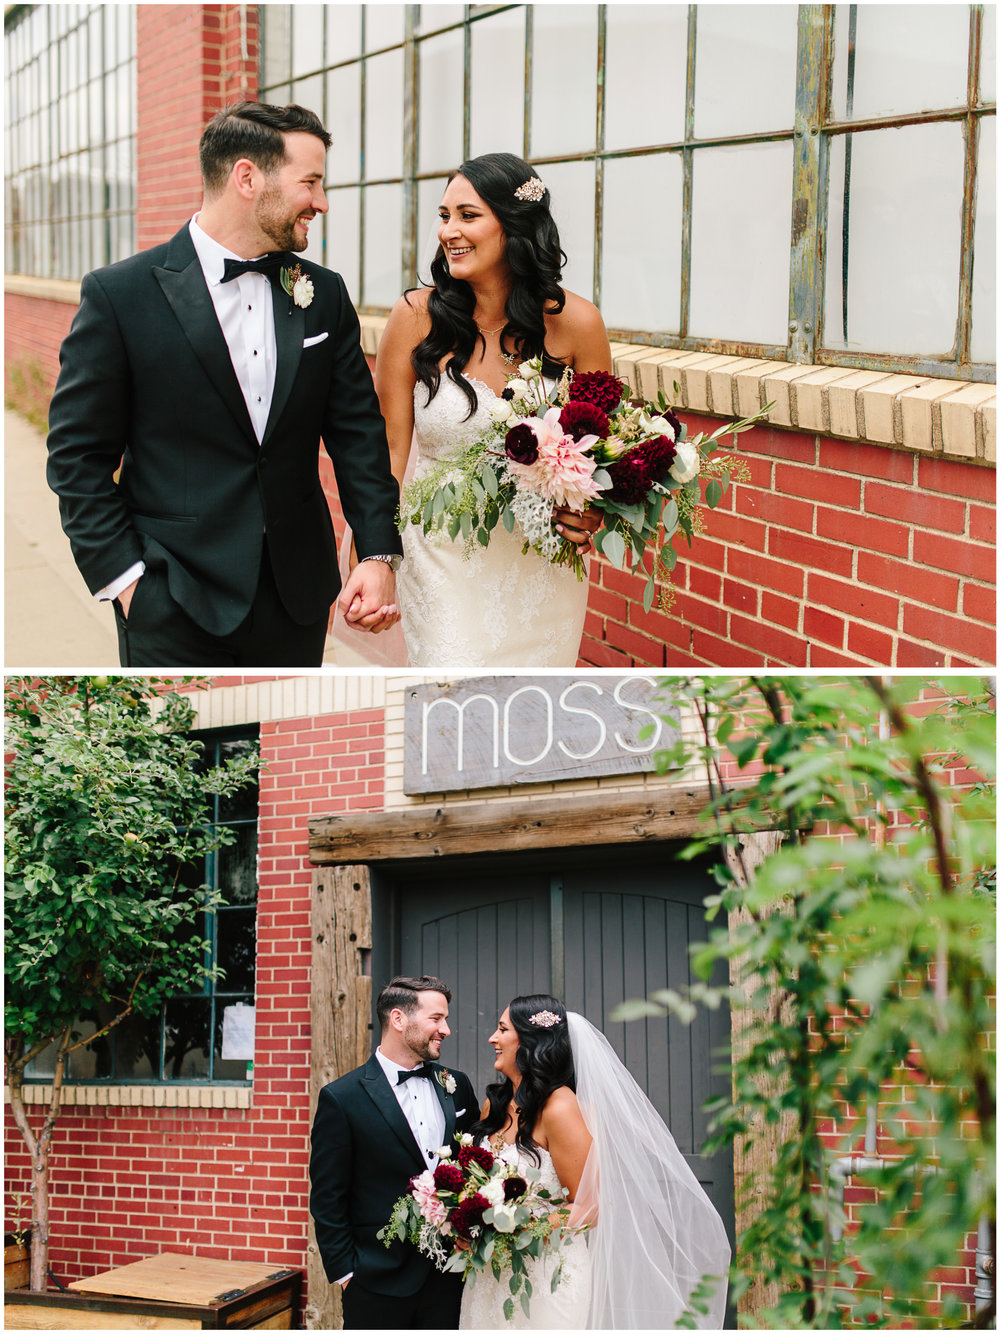 moss_denver_wedding_37.jpg